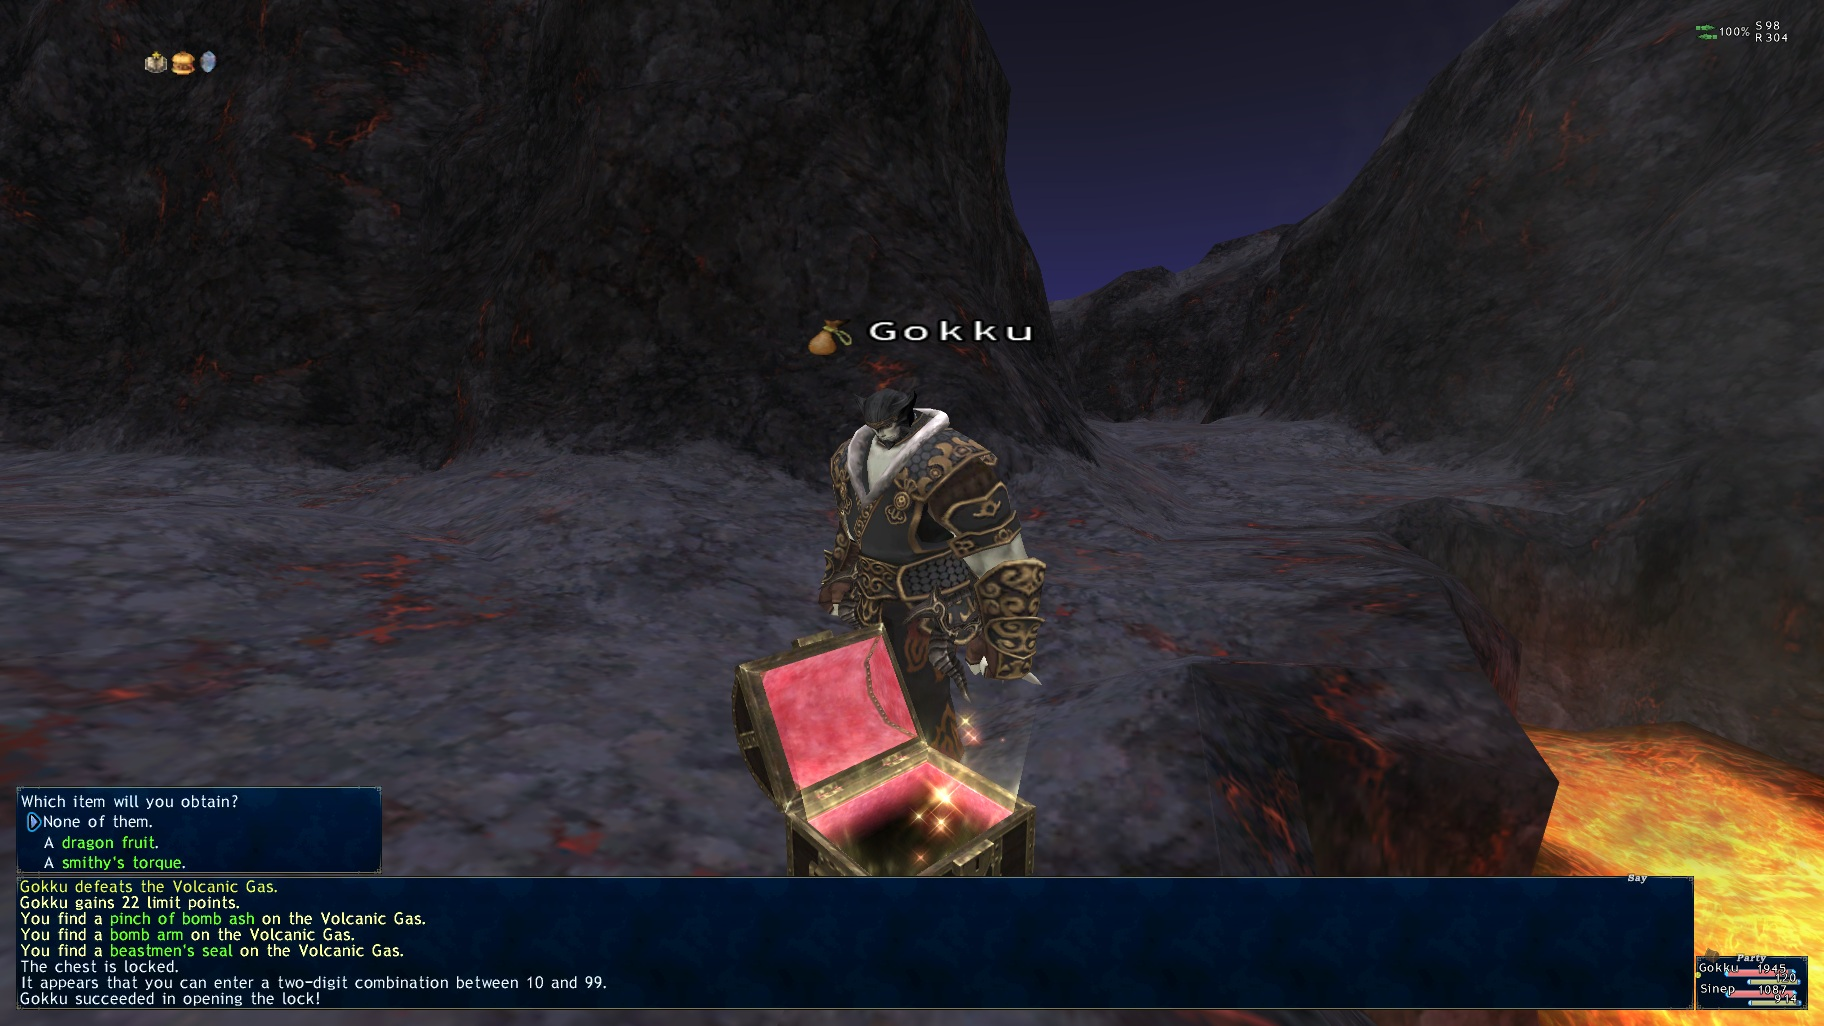 gokku ffxi leather middle delkfutts caves quicksand tower sign grind decide back found find confirmed sightings cooking treasure casket findings torque unable dungeon location share thread game said having played that port hatch much theyve done with many years does surprise nostalgiawhy wasnt 2009never forget kujata stop playinglets imagine love still more received would have ever